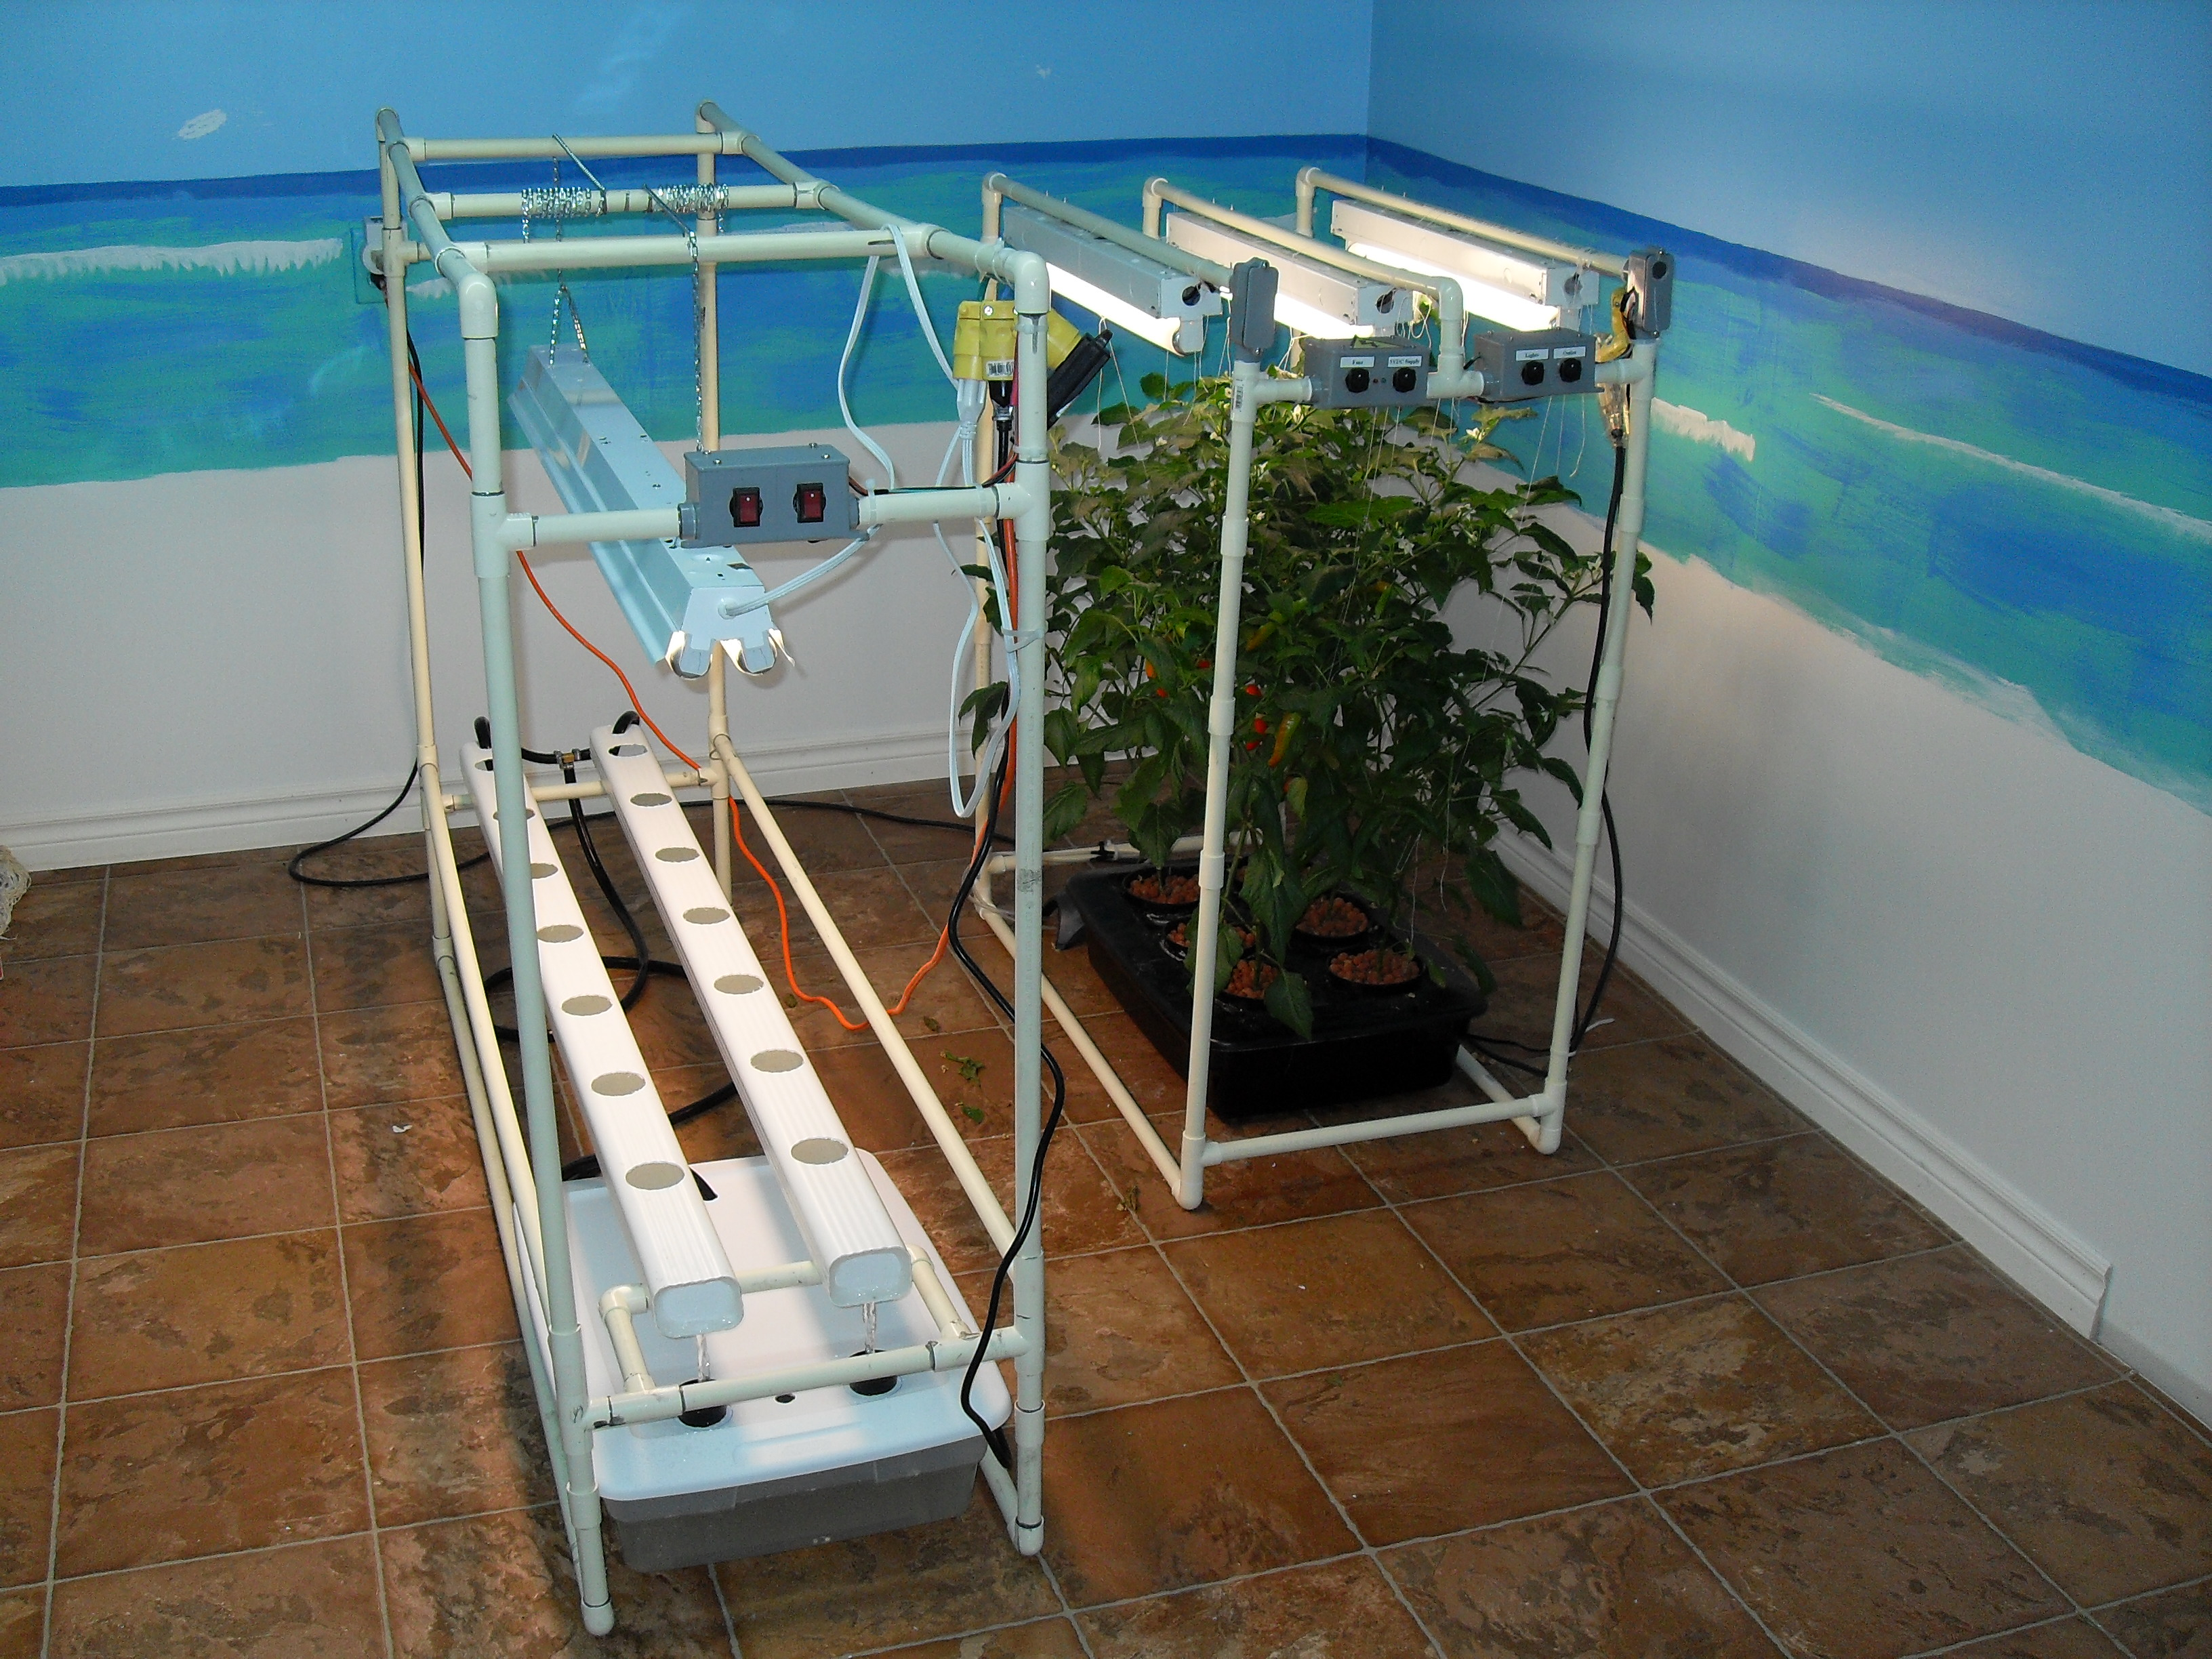 My Indoor NFT Hydroponics System